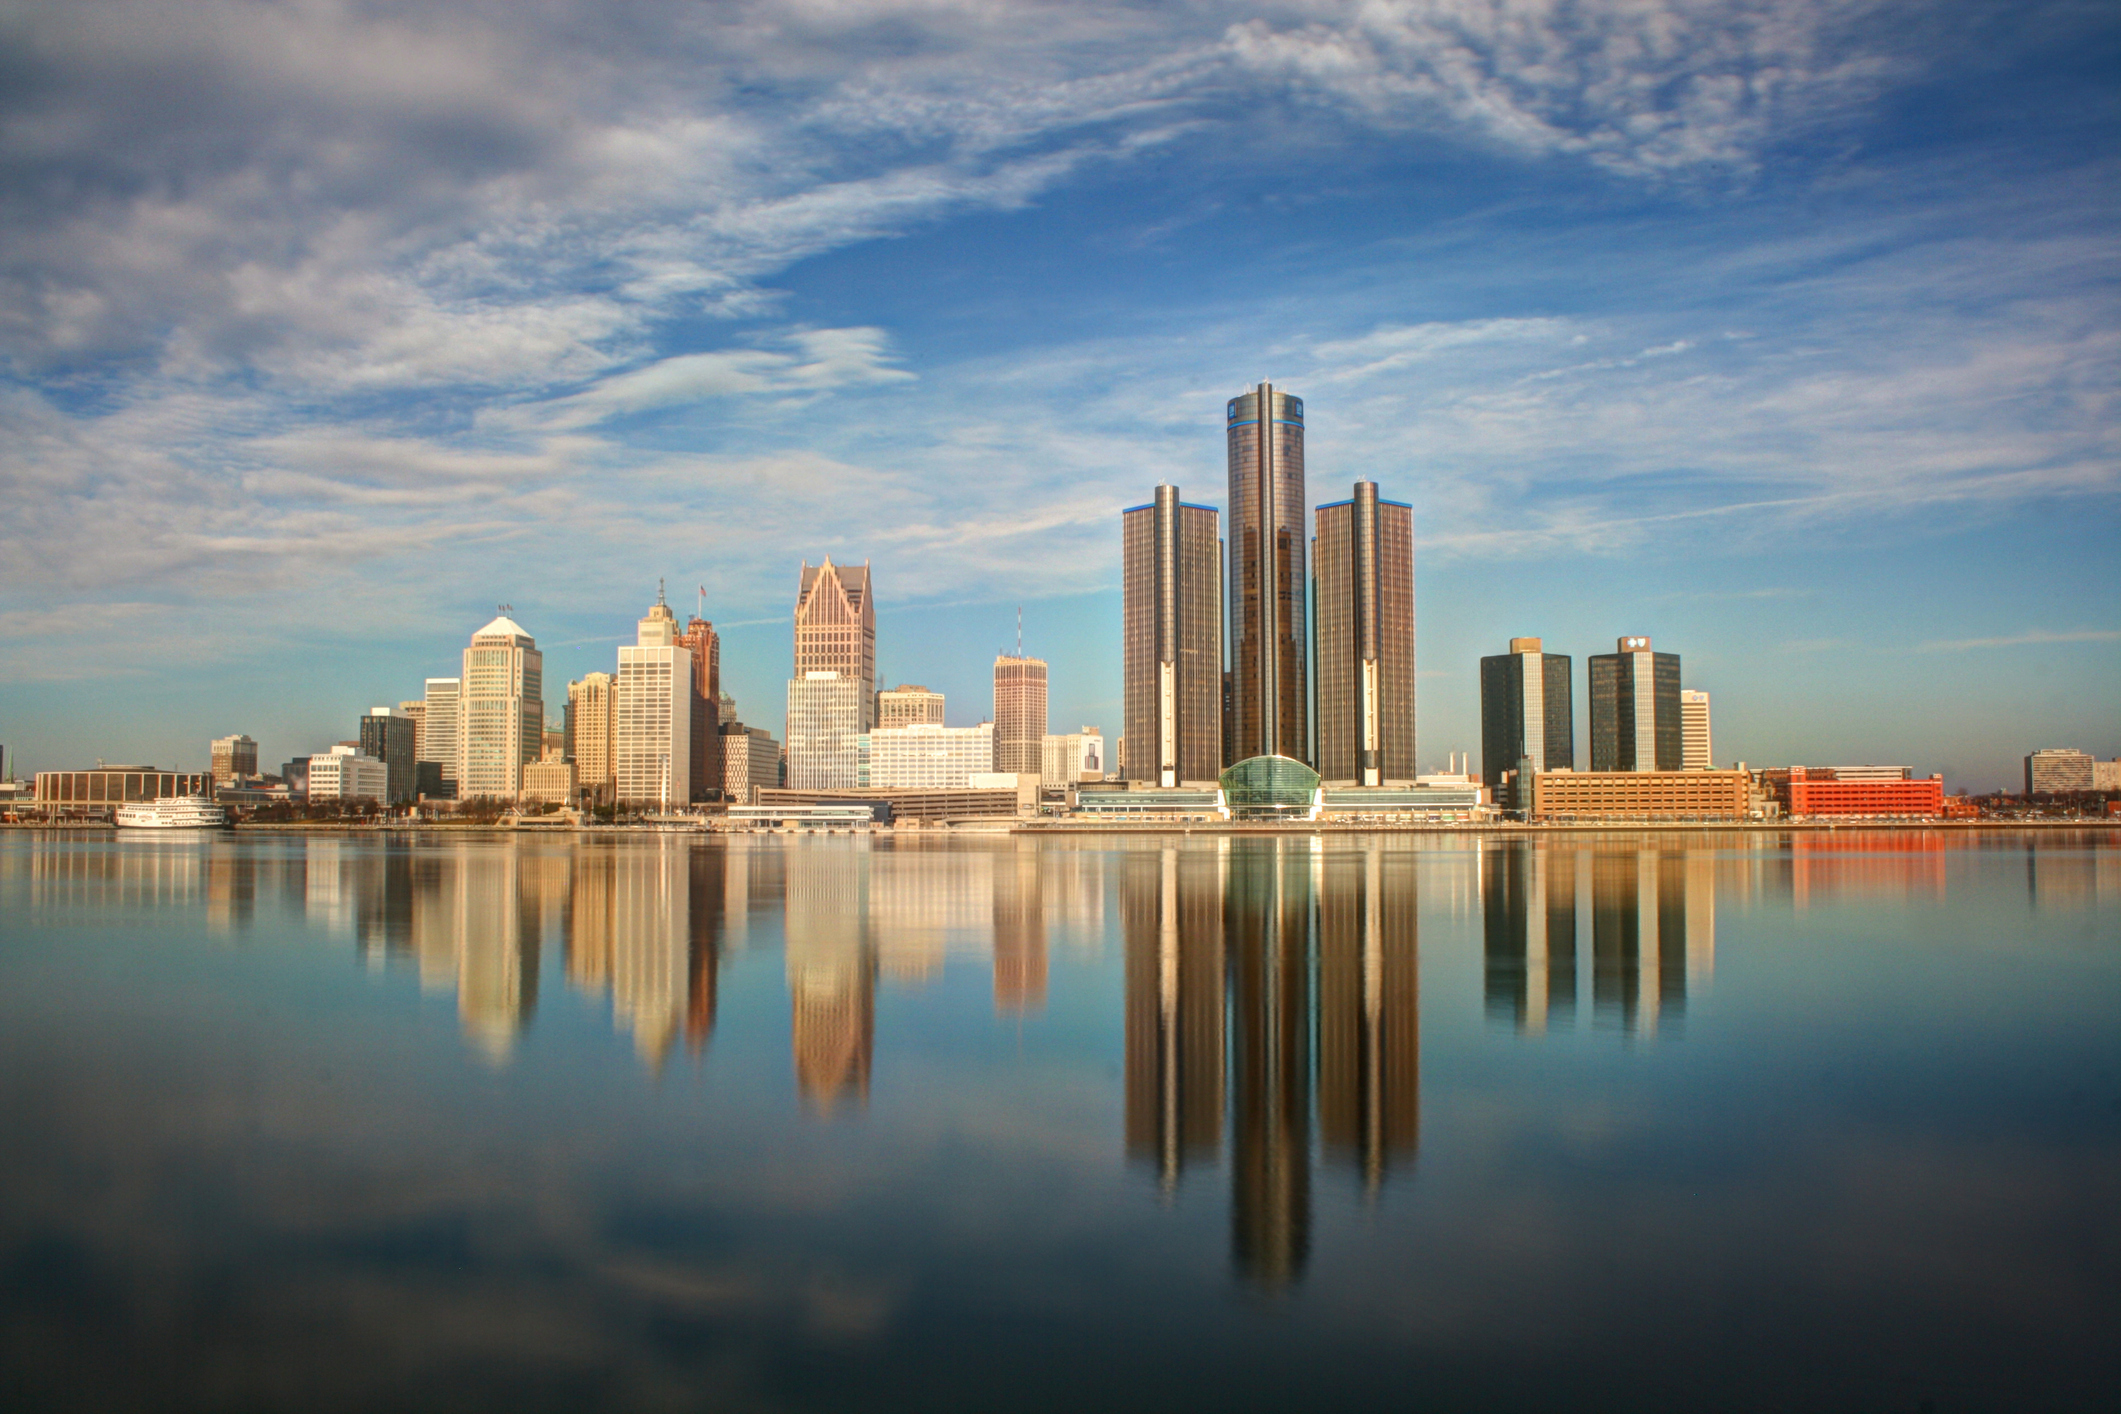 You can travel to Detroit super cheap, but not if I book before you